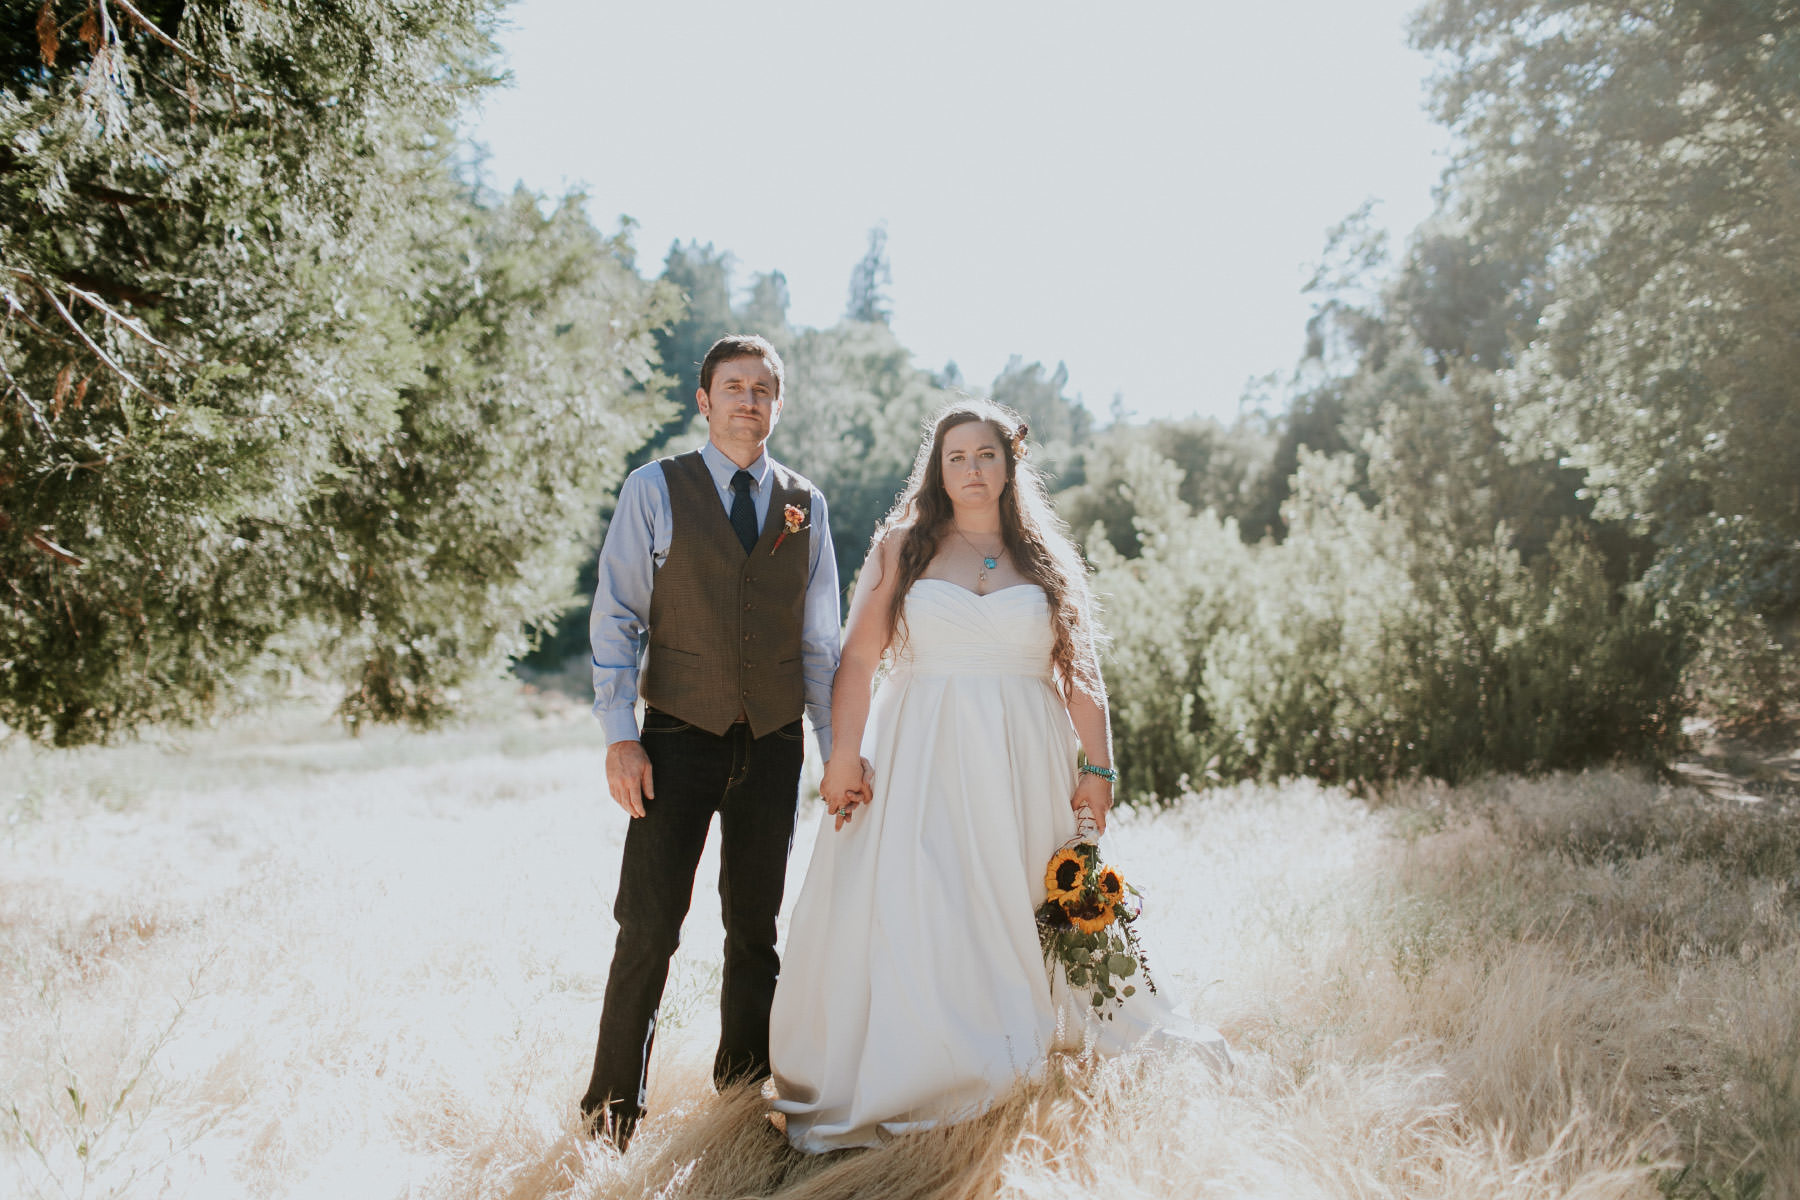 Boho bride and groom editorial in rustic woodland setting at Baileys Palomar Resort